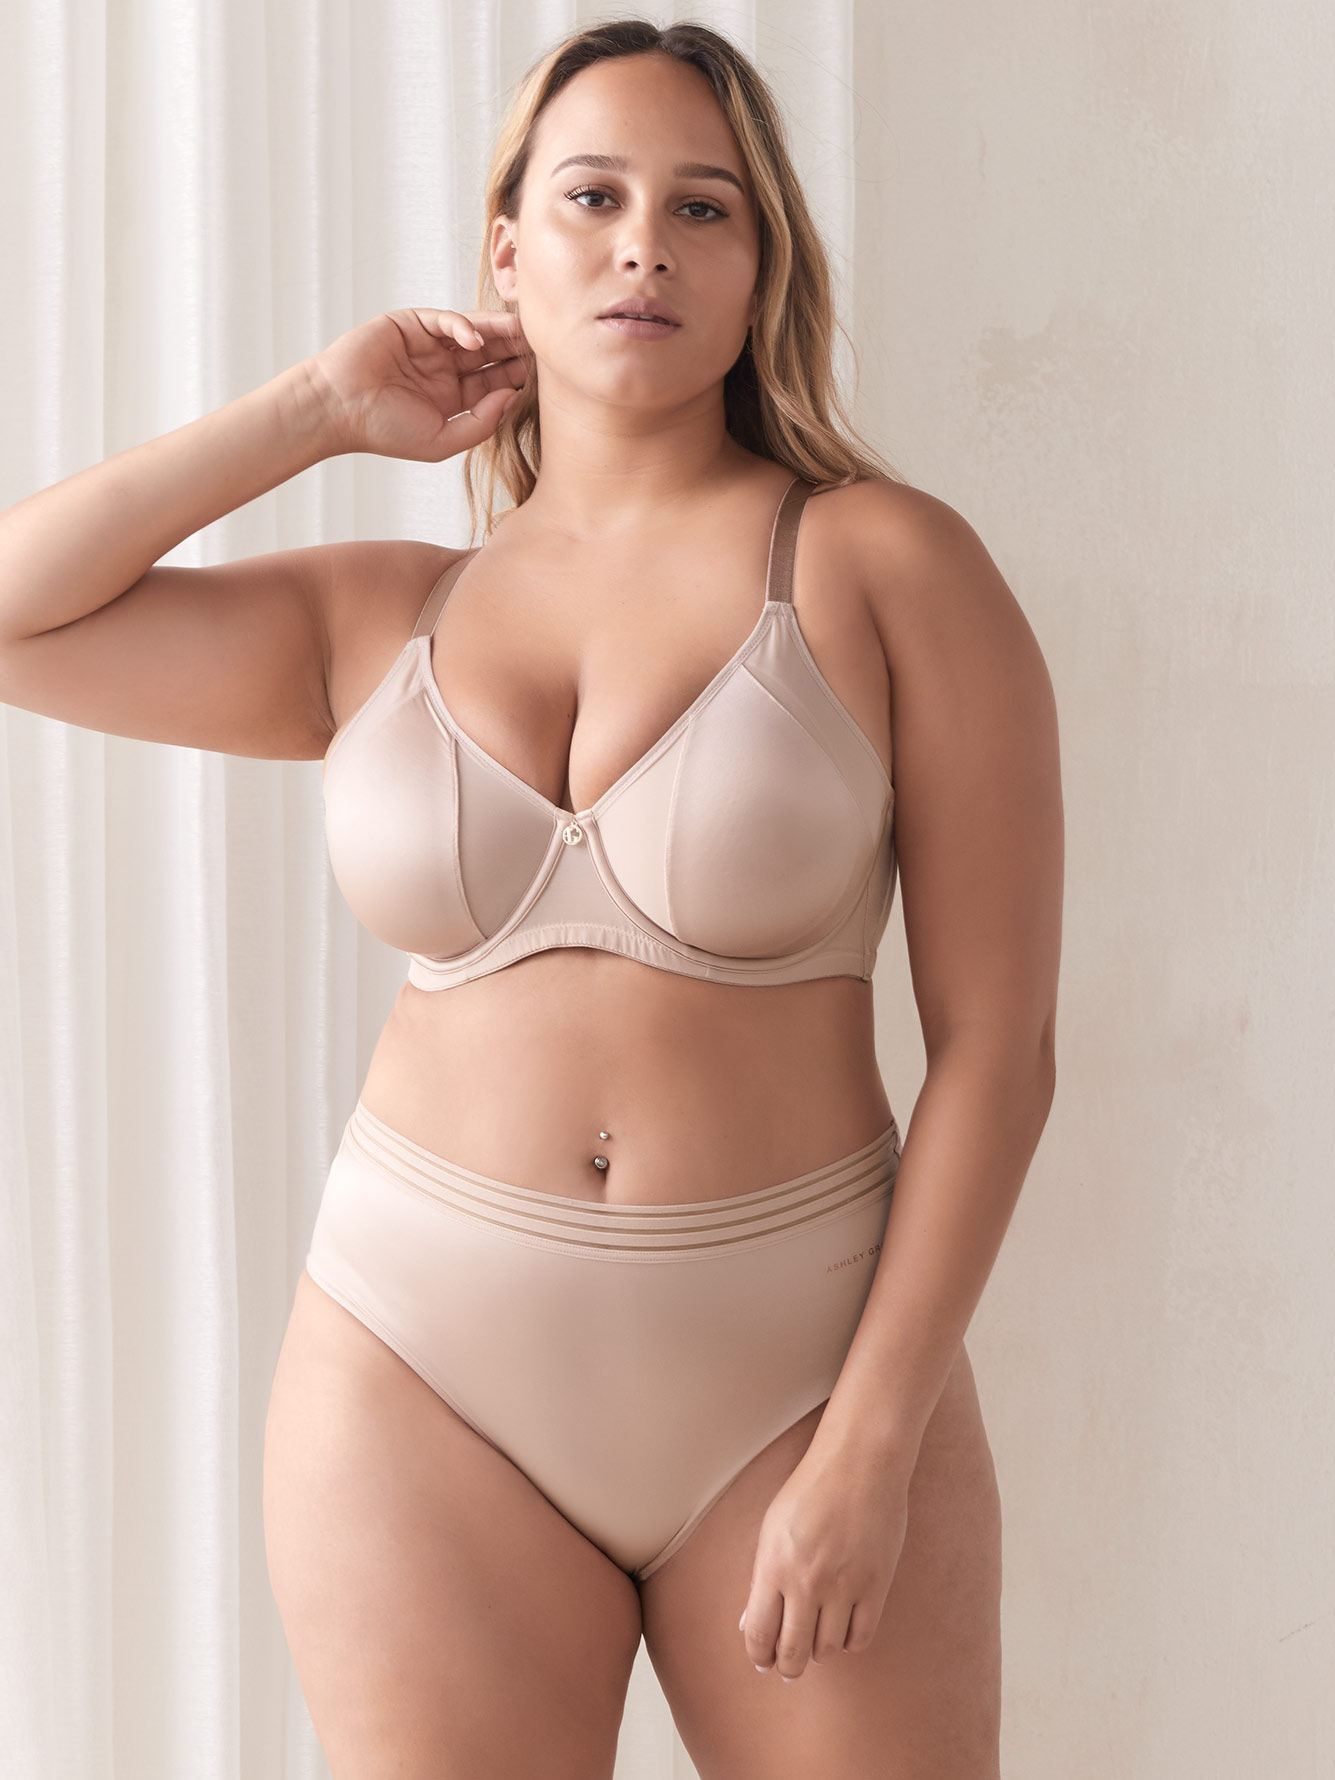 Ashley Graham - Soutien-gorge Attraction Fatale à bonnets souples